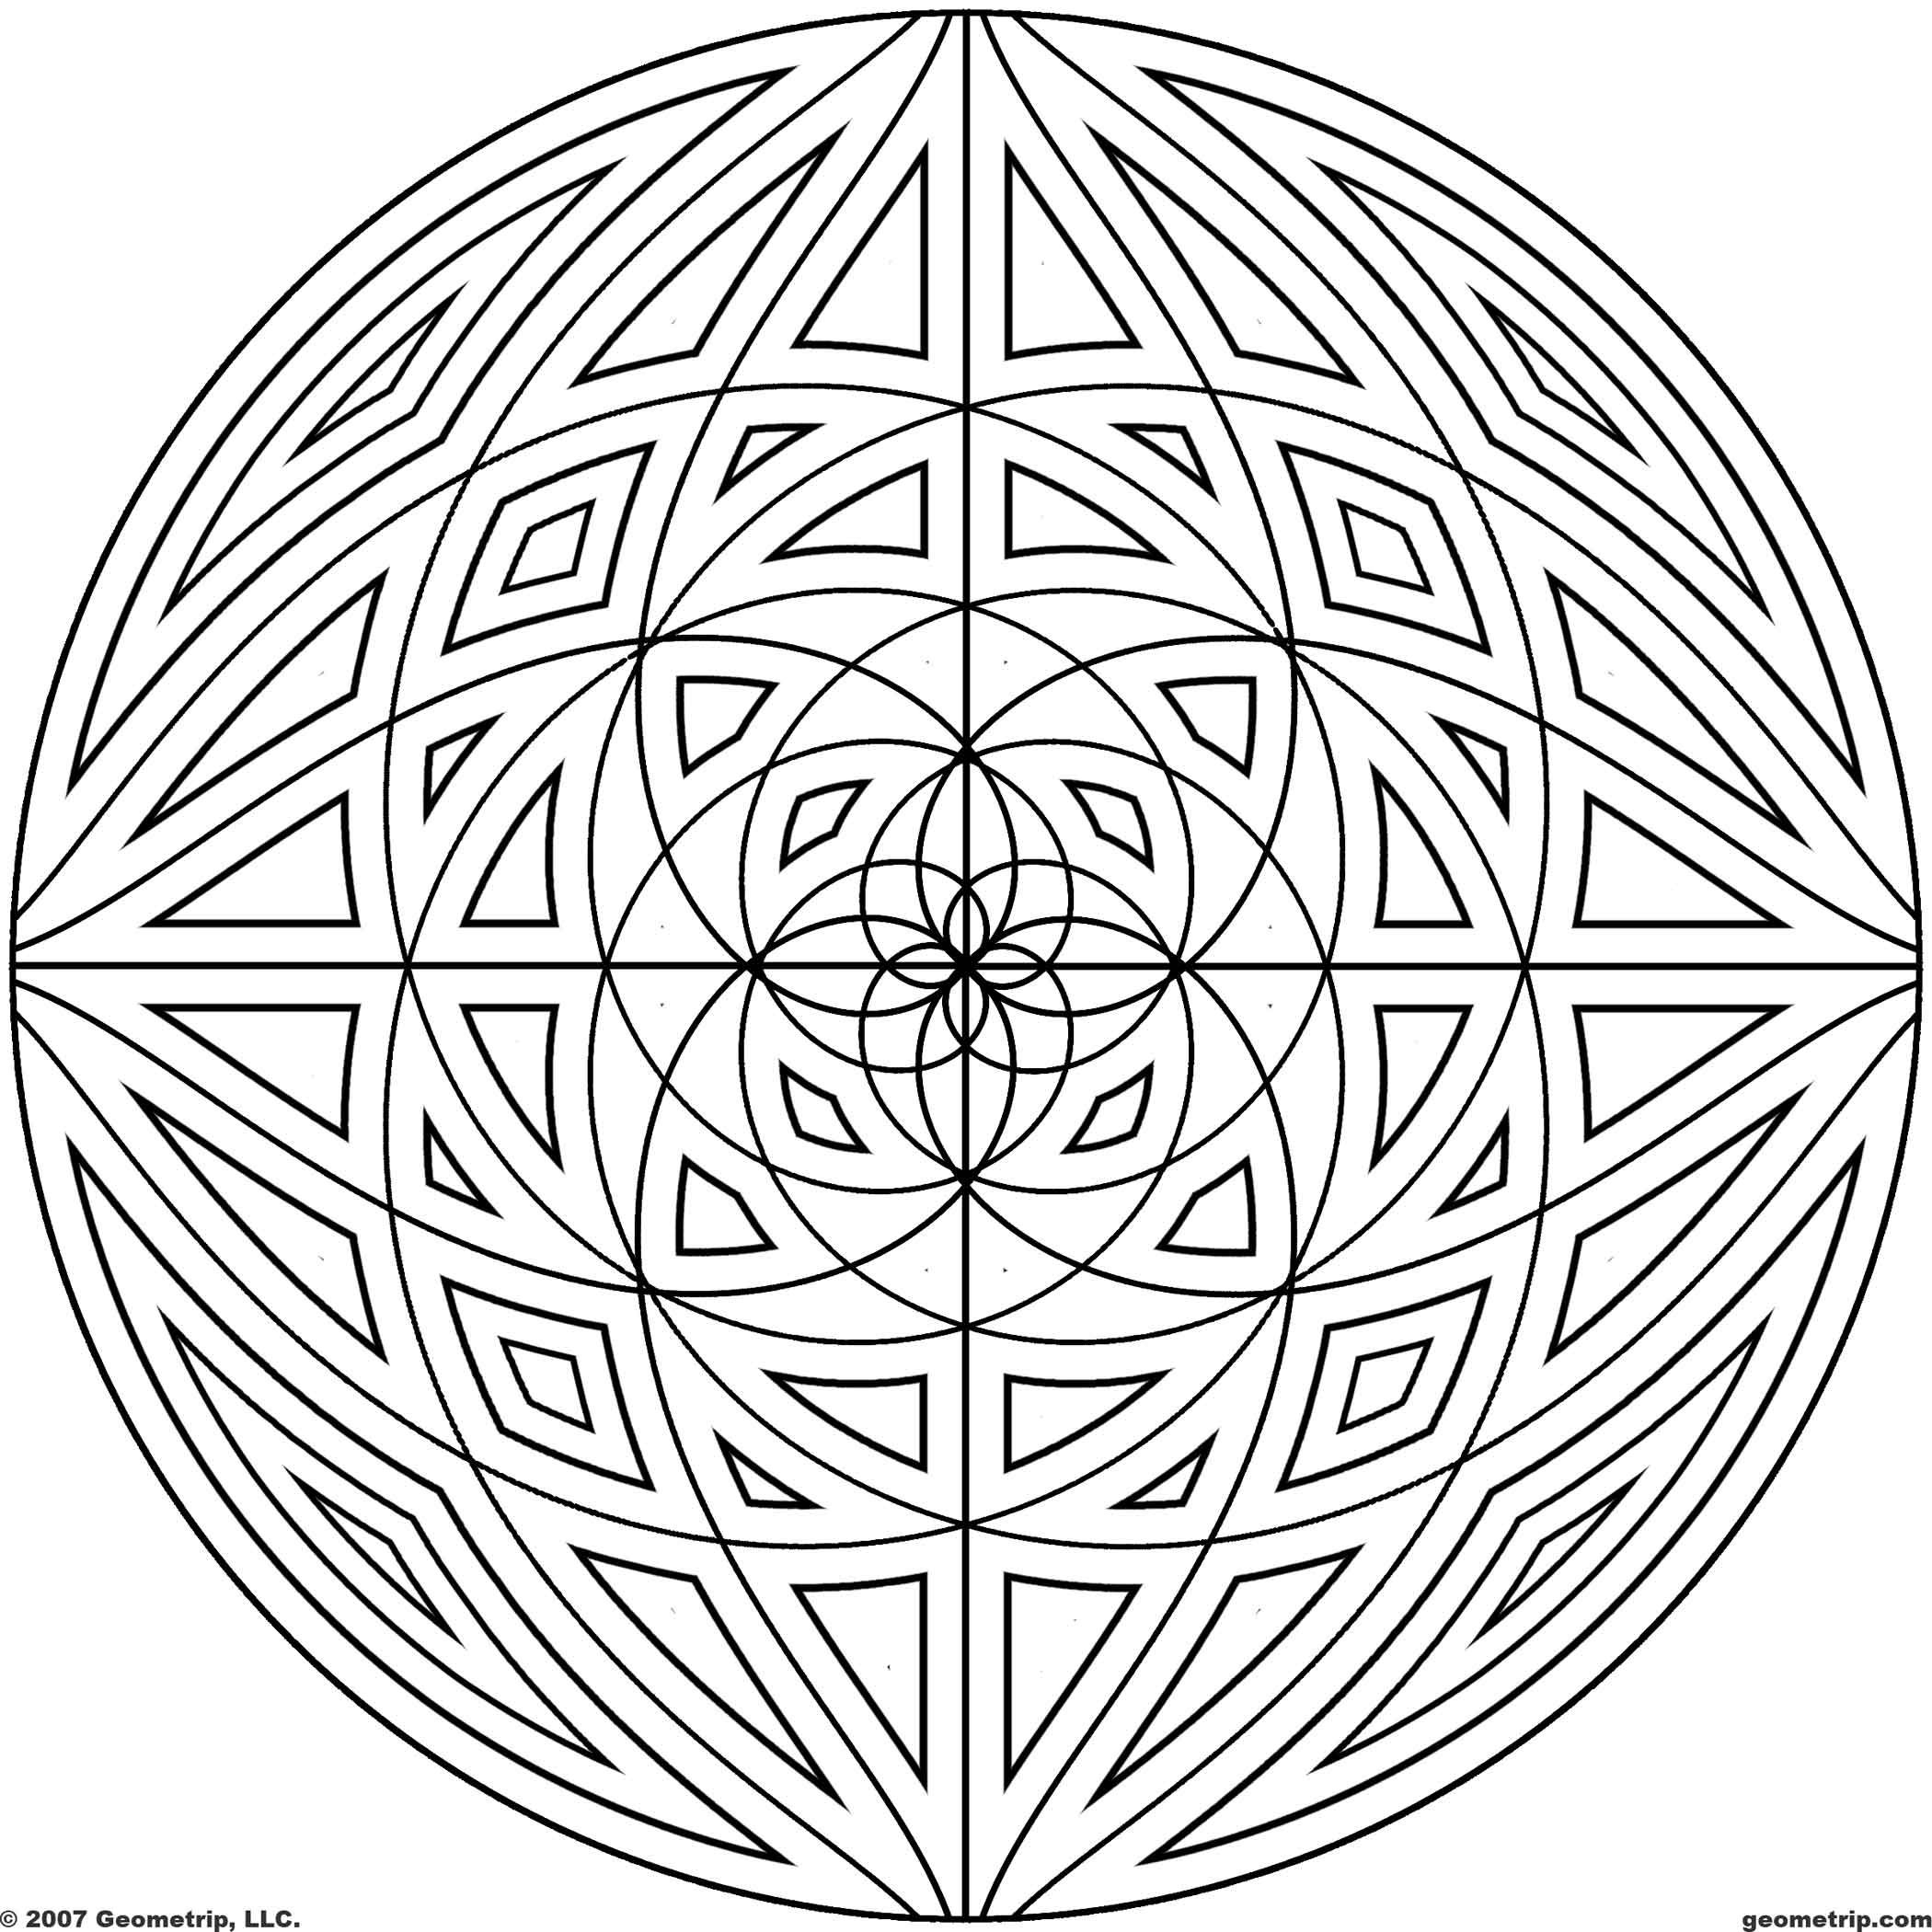 Jewish mandala coloring pages - Detailed Coloring Pages For Adults Geometrip Com Free Geometric Coloring Designs Circles